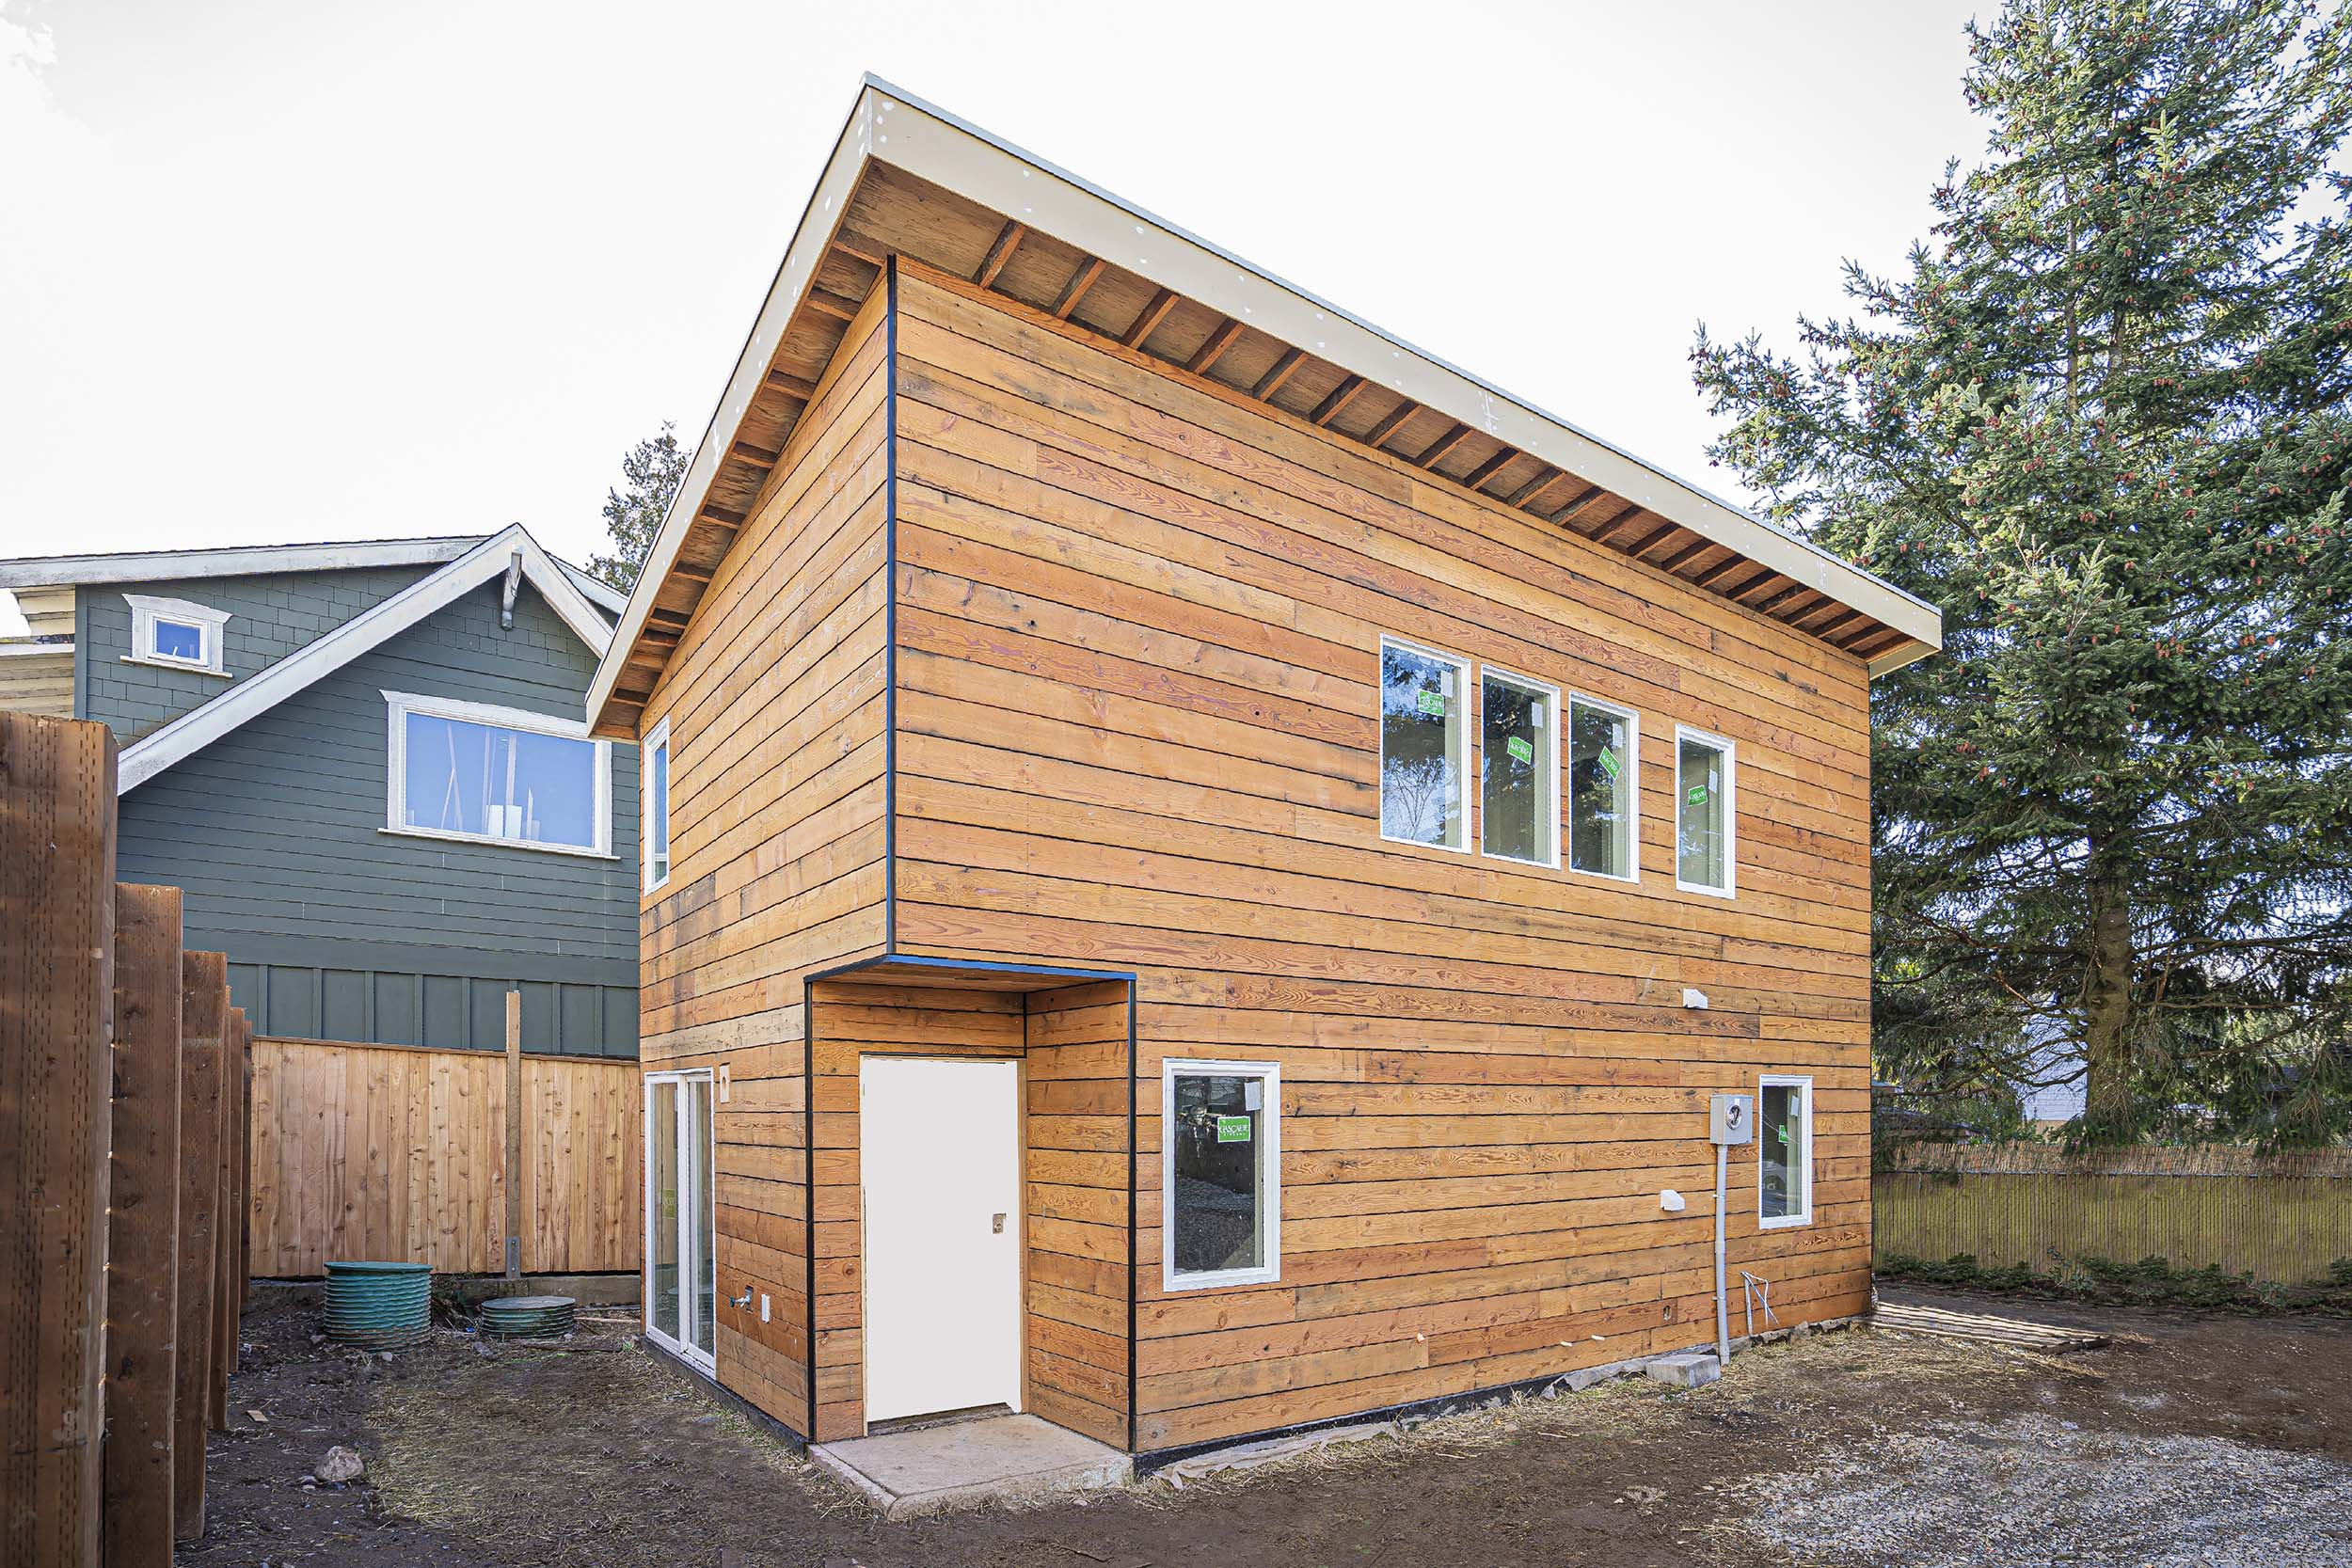 Custom design and construction of a two story DADU (Backyard Cottage) located at 10217 40th Ave SW, Seattle WA 98146